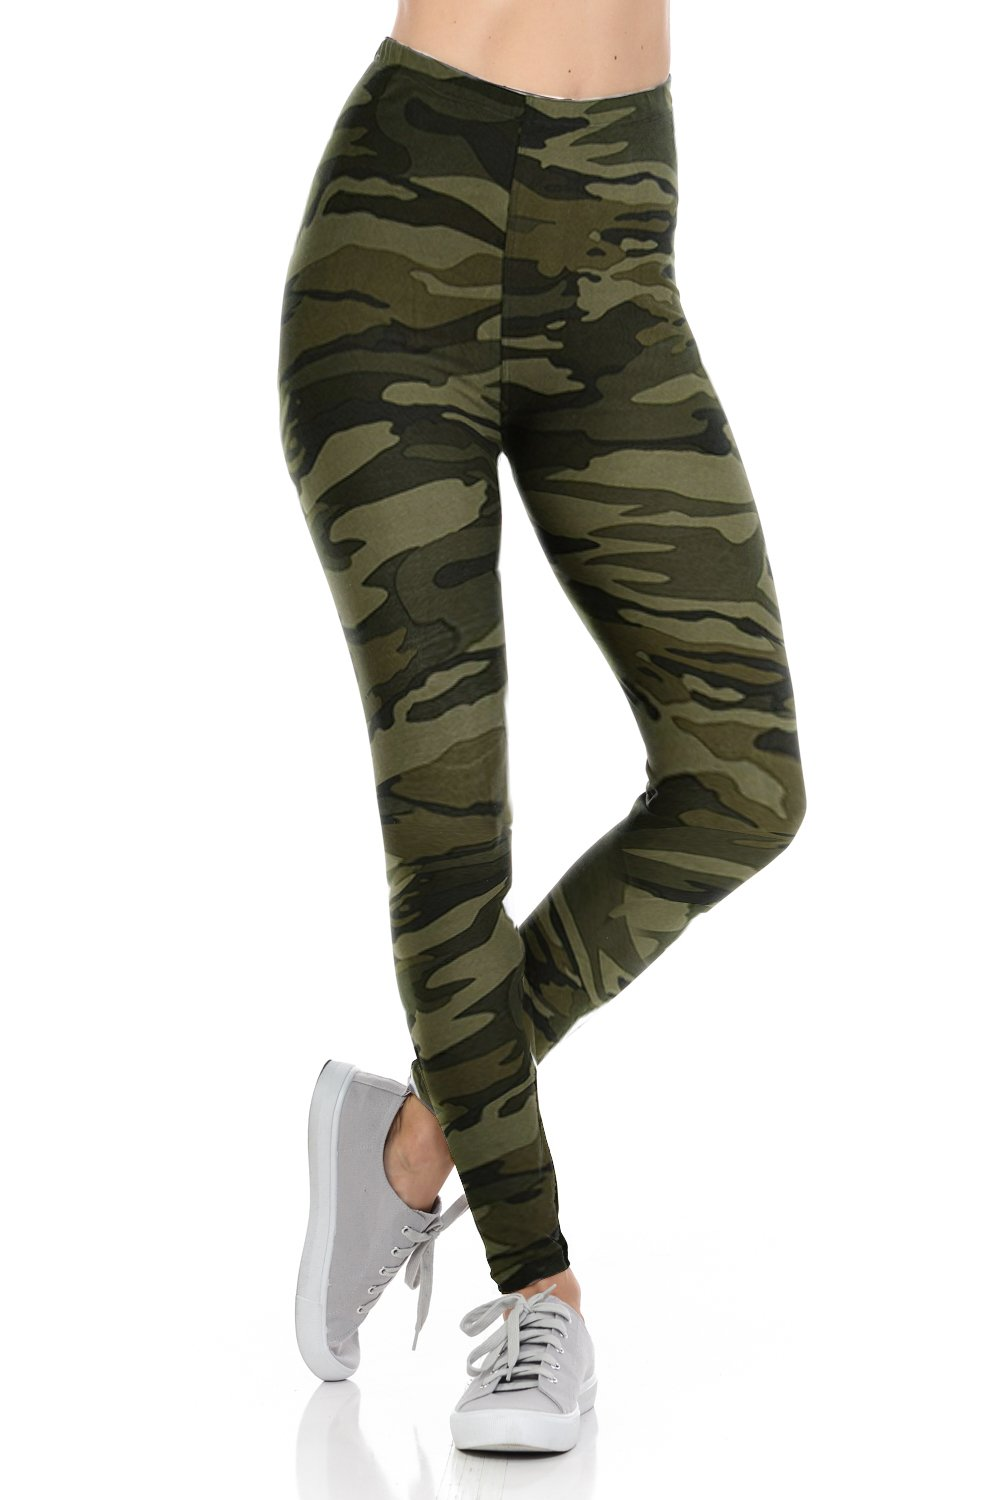 bluensquare Leggings High Waist Premium Soft Brushed 4 Way Stretched Variations by Amazon Famous Buttery (OneSize(0-12), Camouflage)